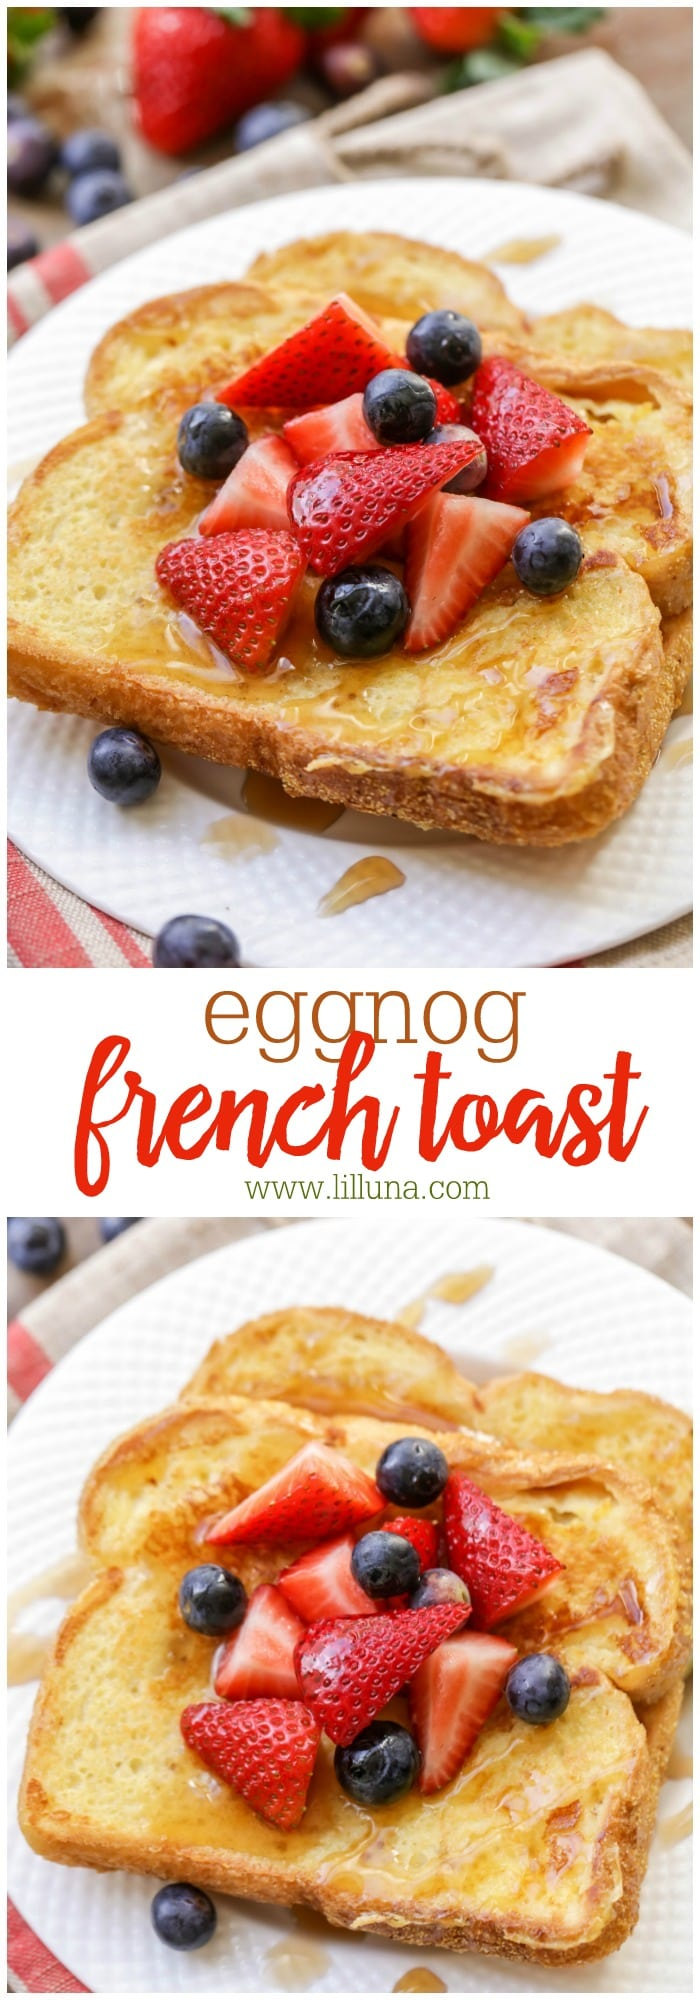 Eggnog French Toast - a simple, tasty and great breakfast recipe to try during the holidays. It's especially perfect for all eggnog lovers!!